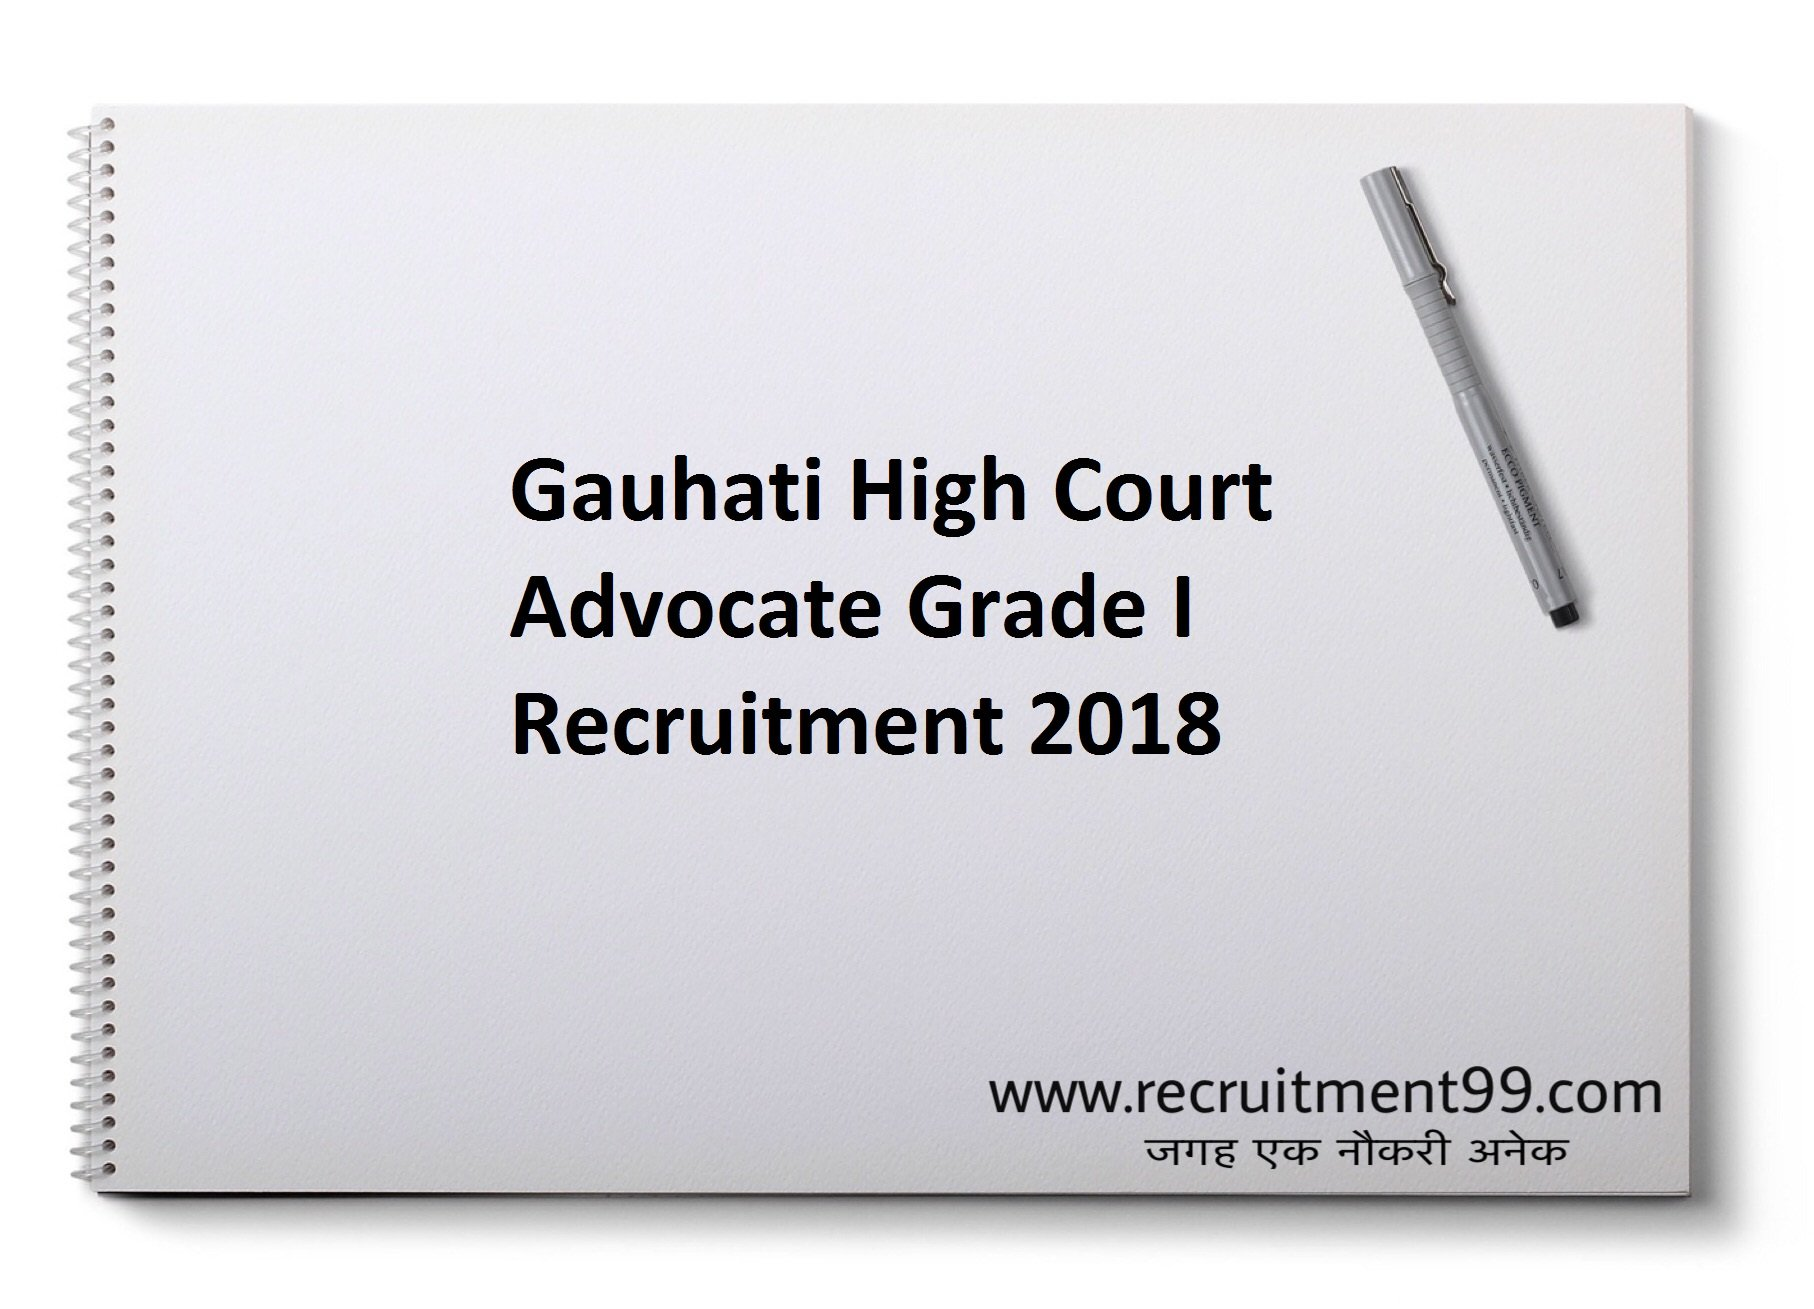 Gauhati High Court Advocate Recruitment Admit Card Result 2018